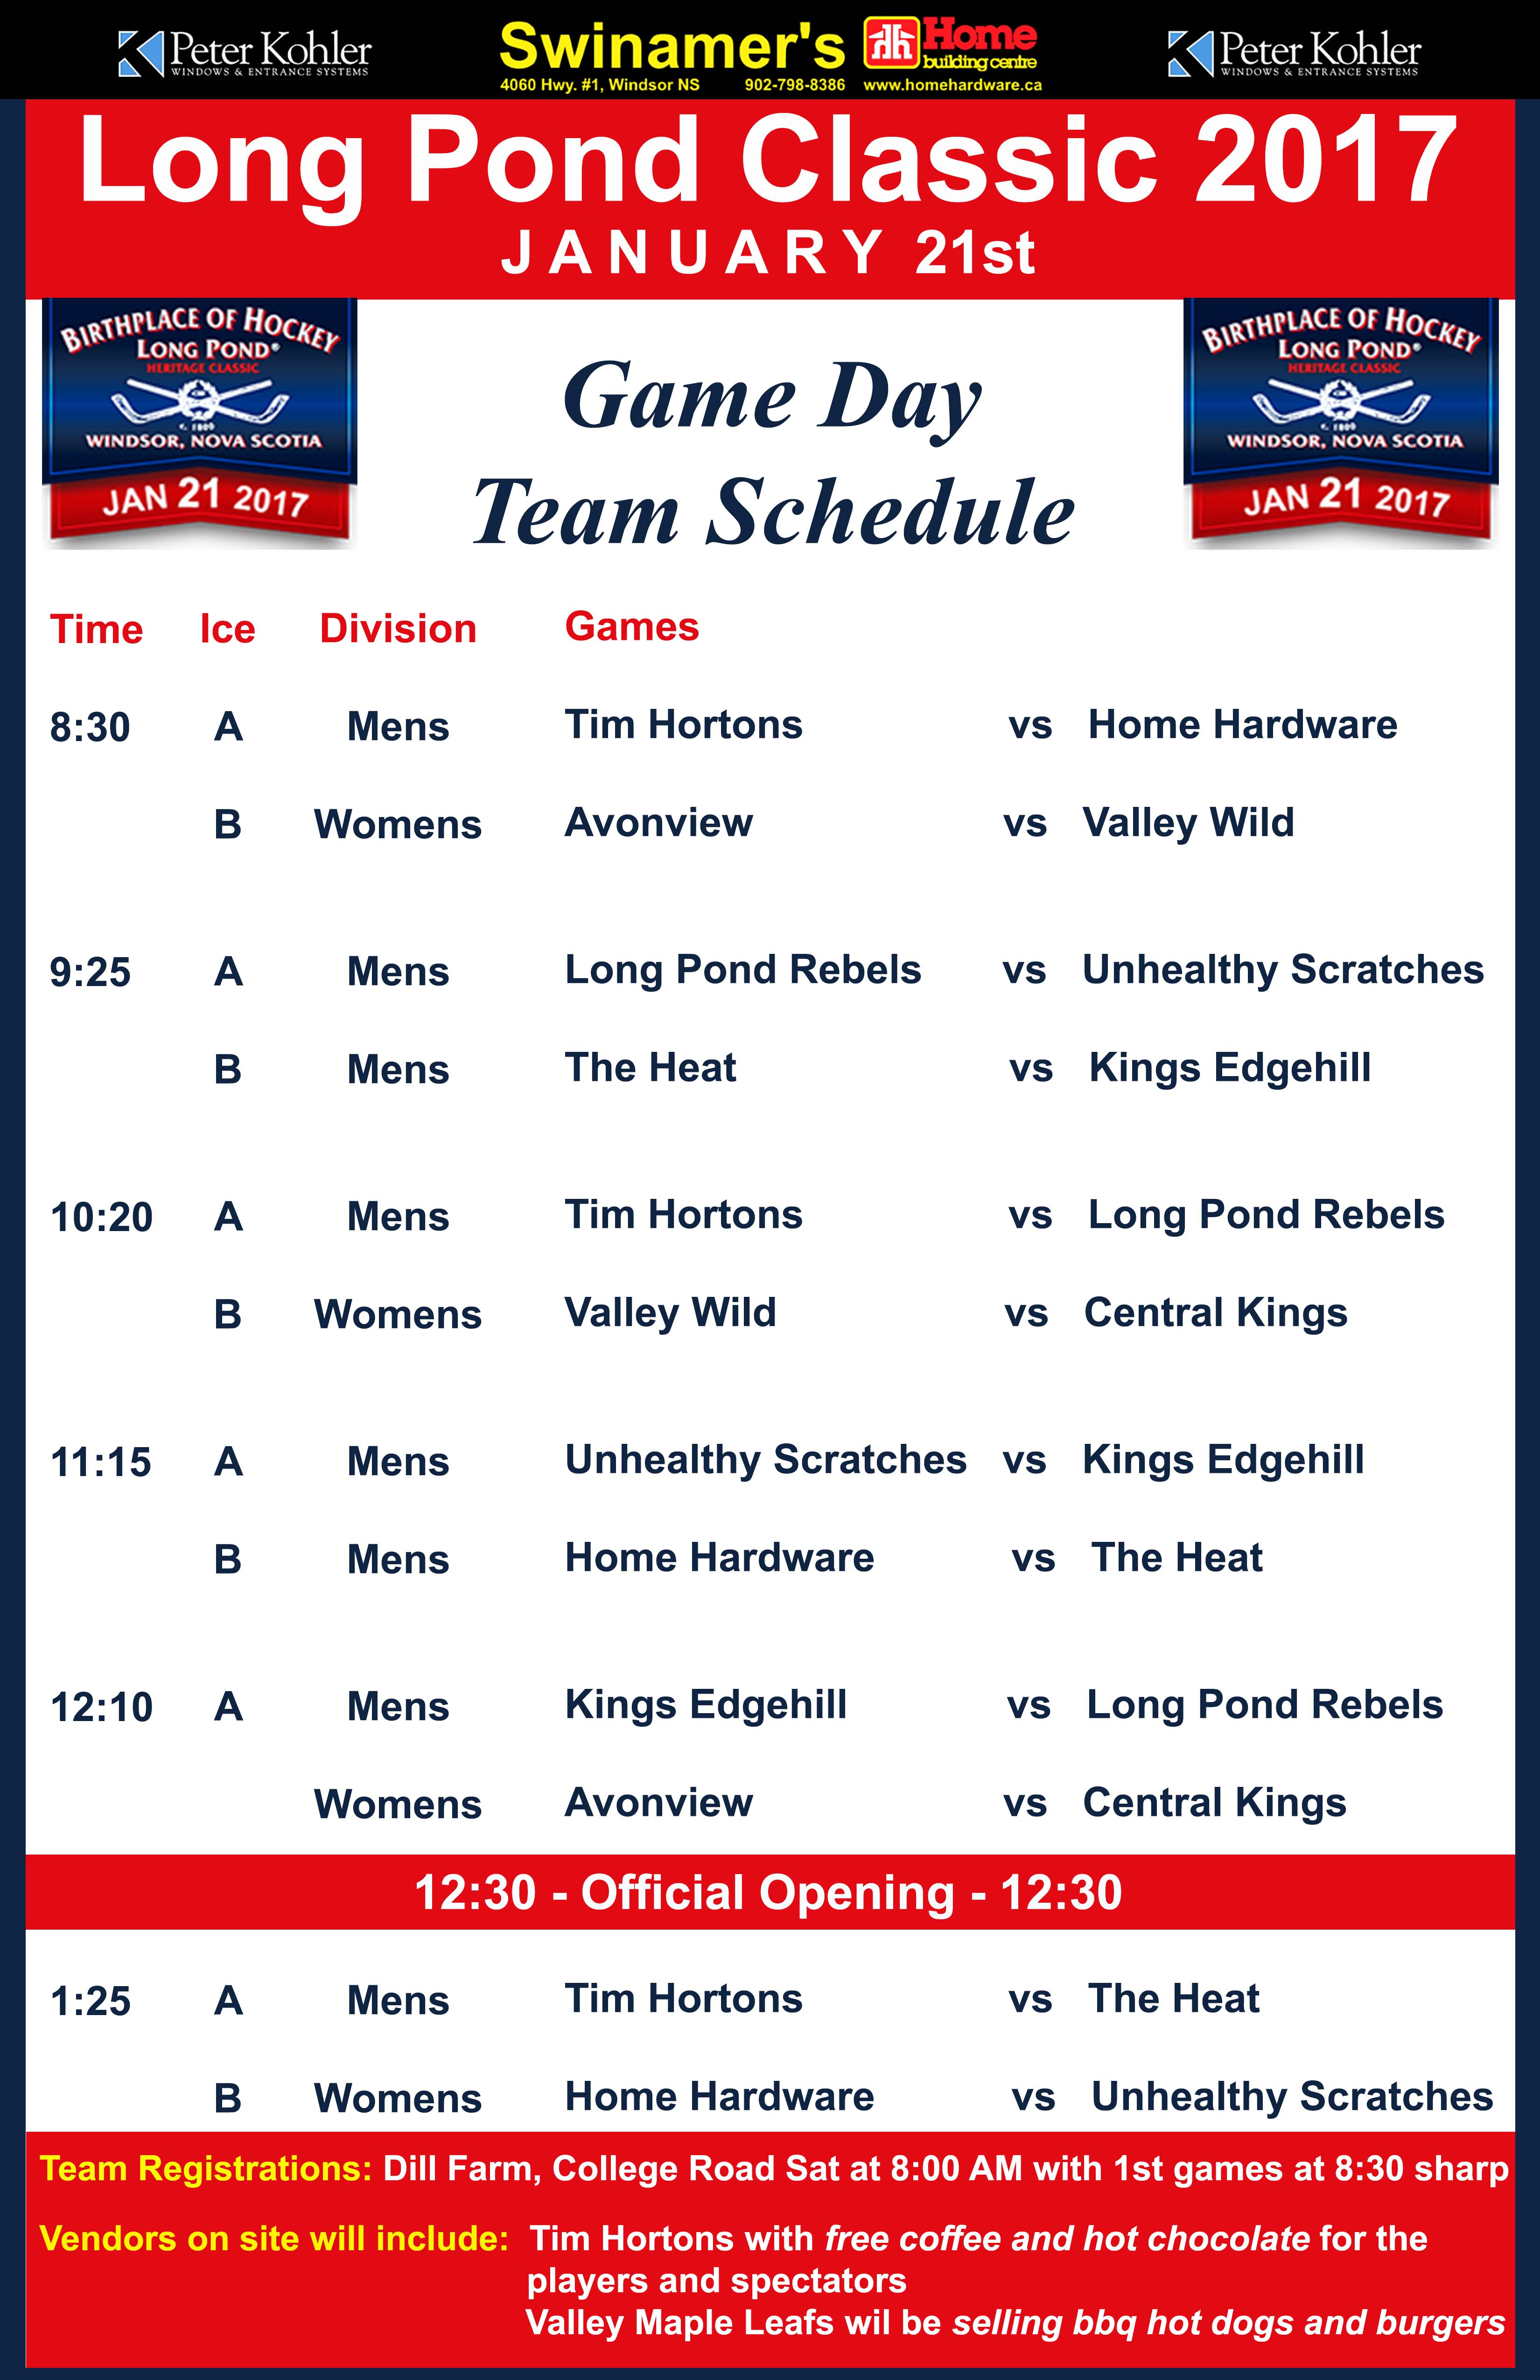 Long Pond Classic 2017 Game Schedule